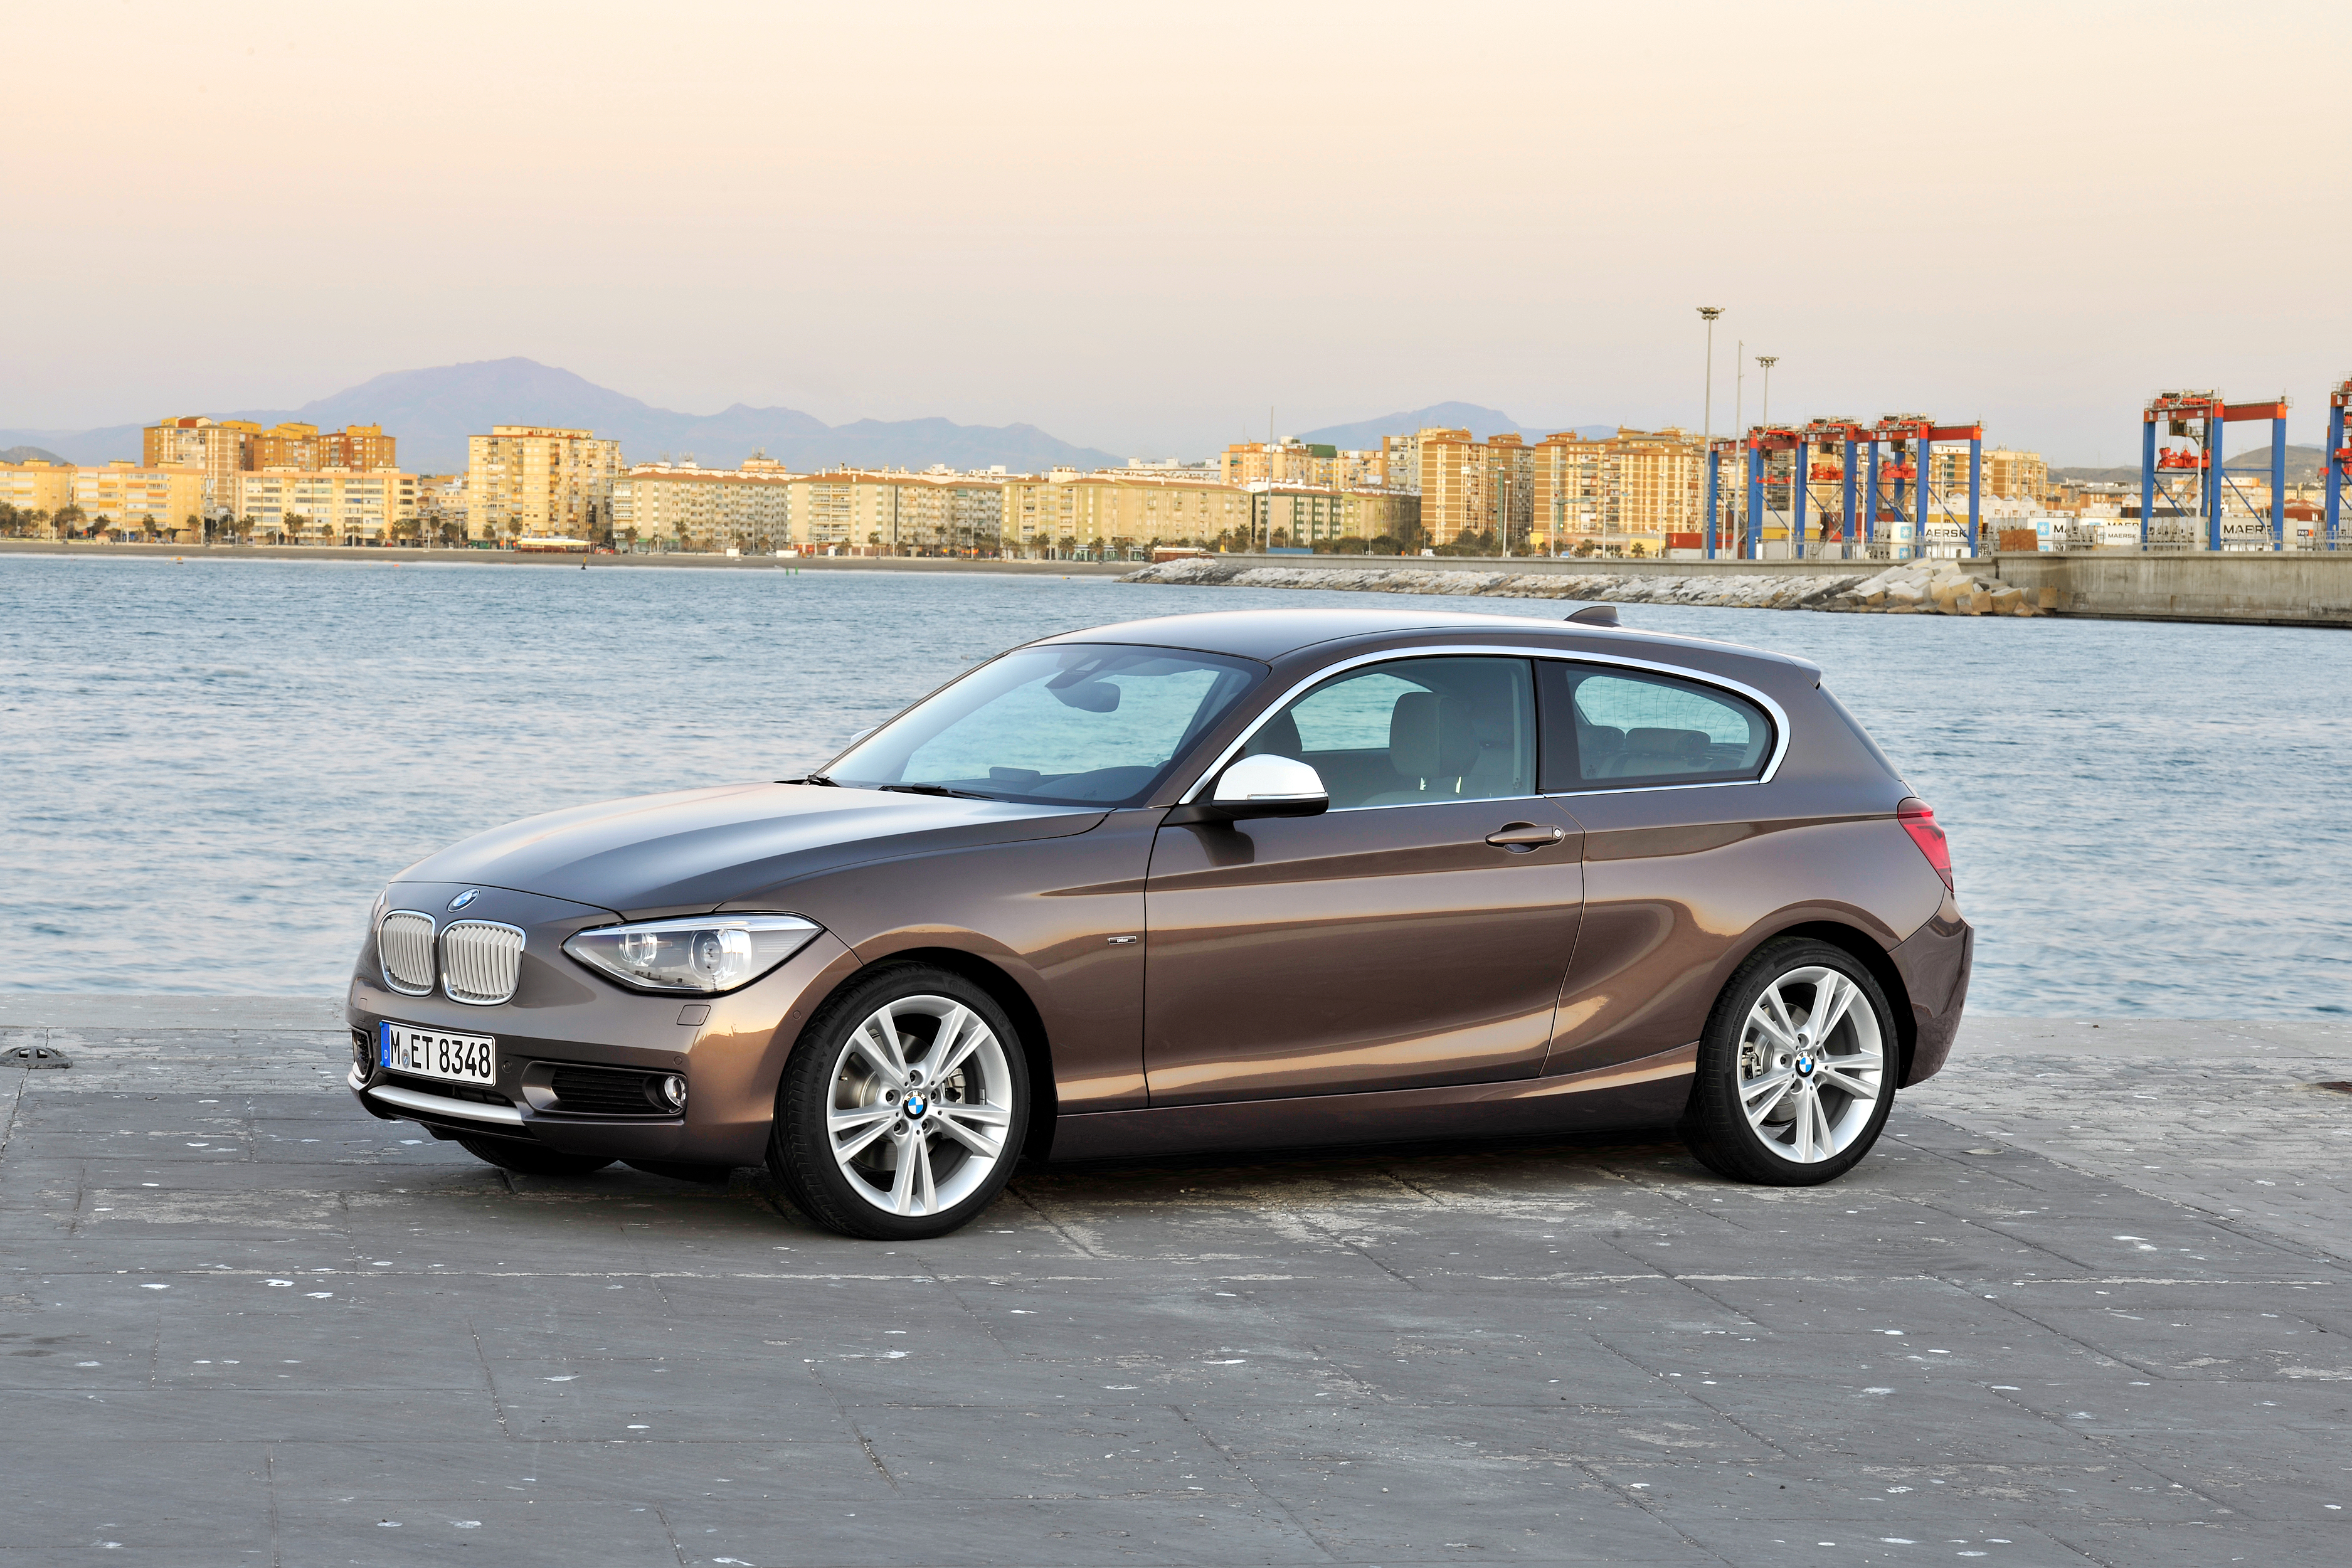 bmw 114i debuts with 3 door bmw 1 series hatch body paul tan image 106078. Black Bedroom Furniture Sets. Home Design Ideas